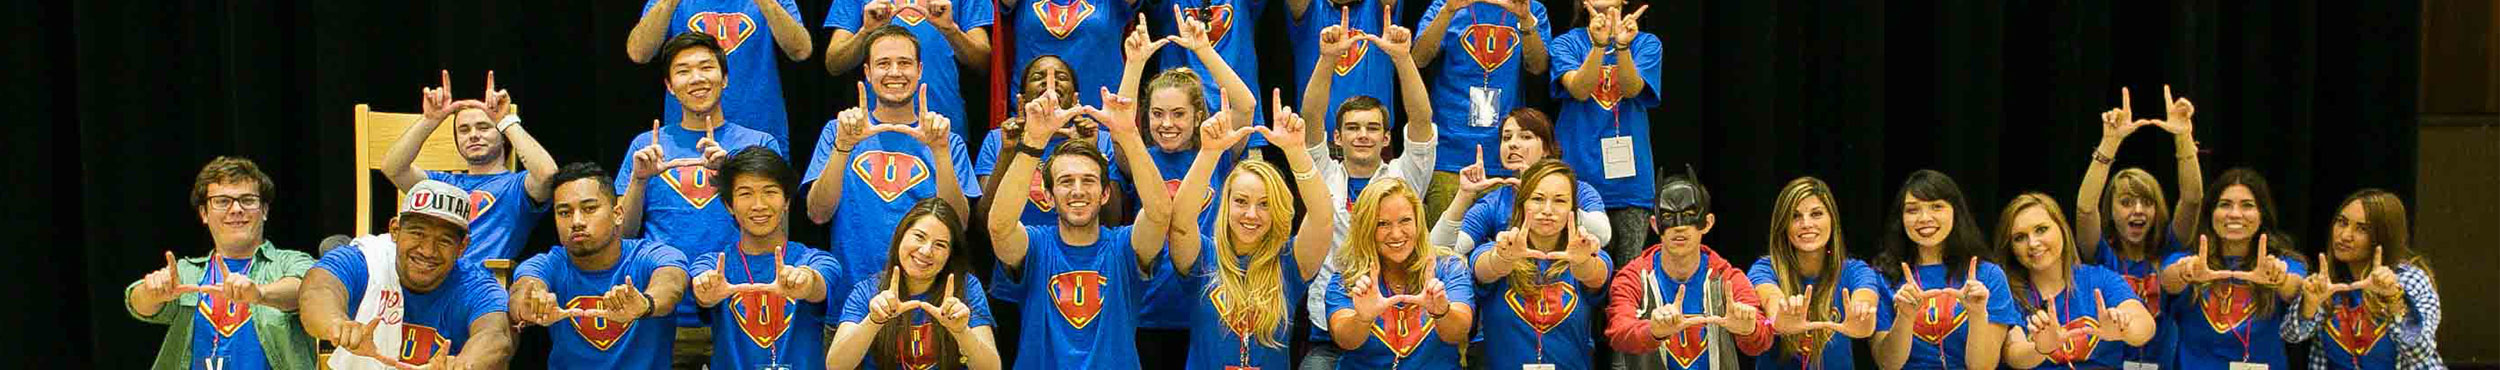 A group photo of student volunteers all wearing matching volunteer t-shirts at a UPC event.